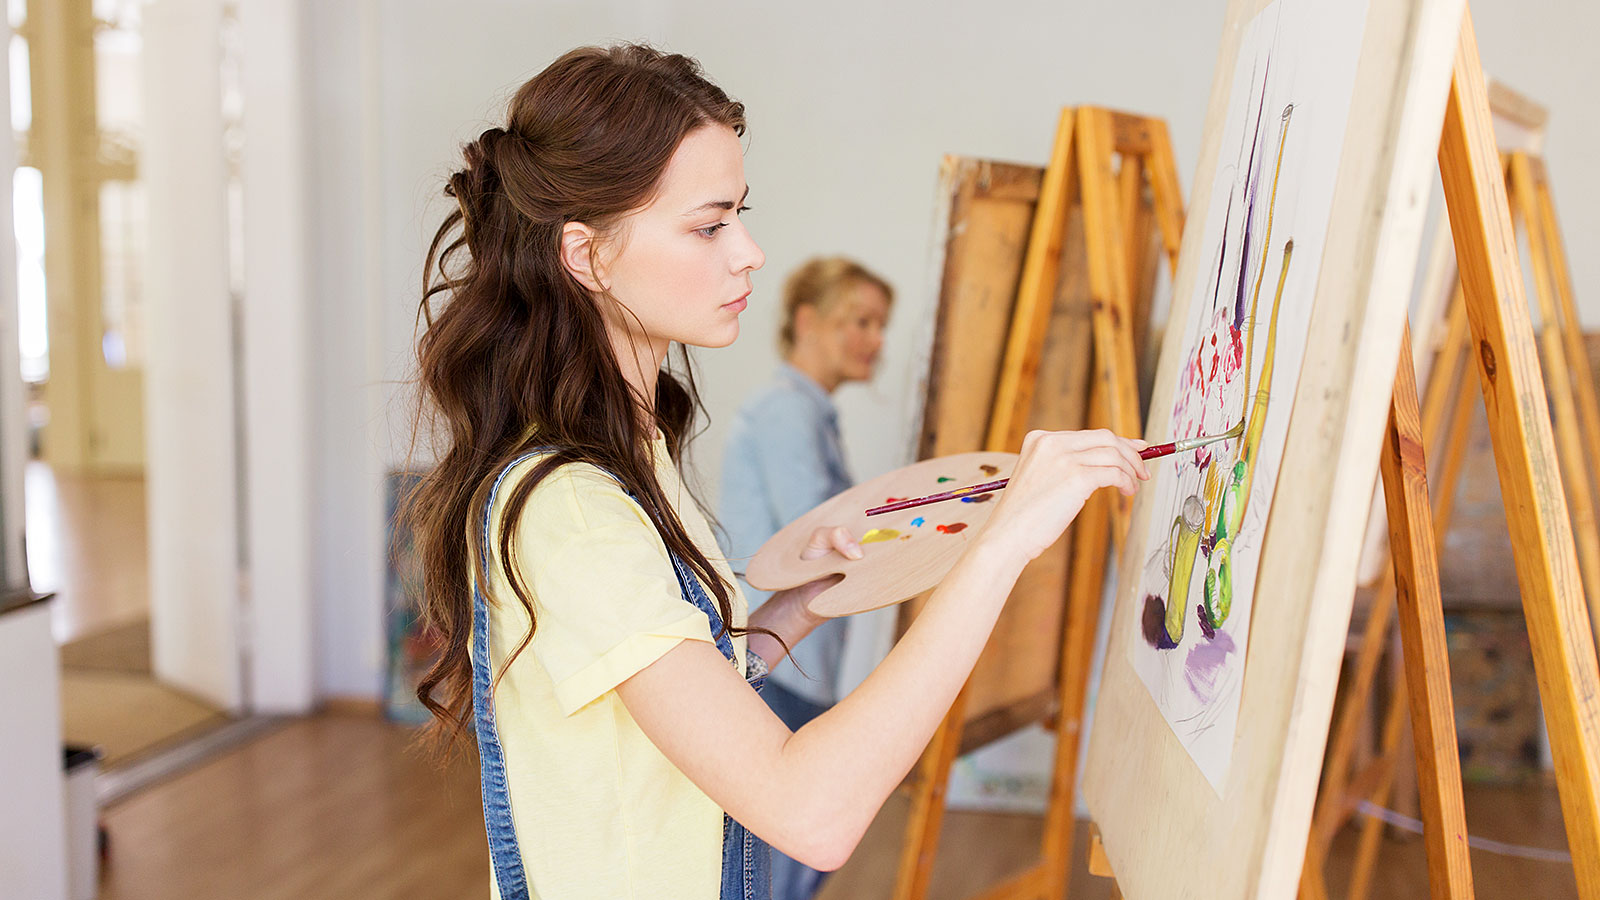 Highly successful people enjoy these 6 hobbies in their free time